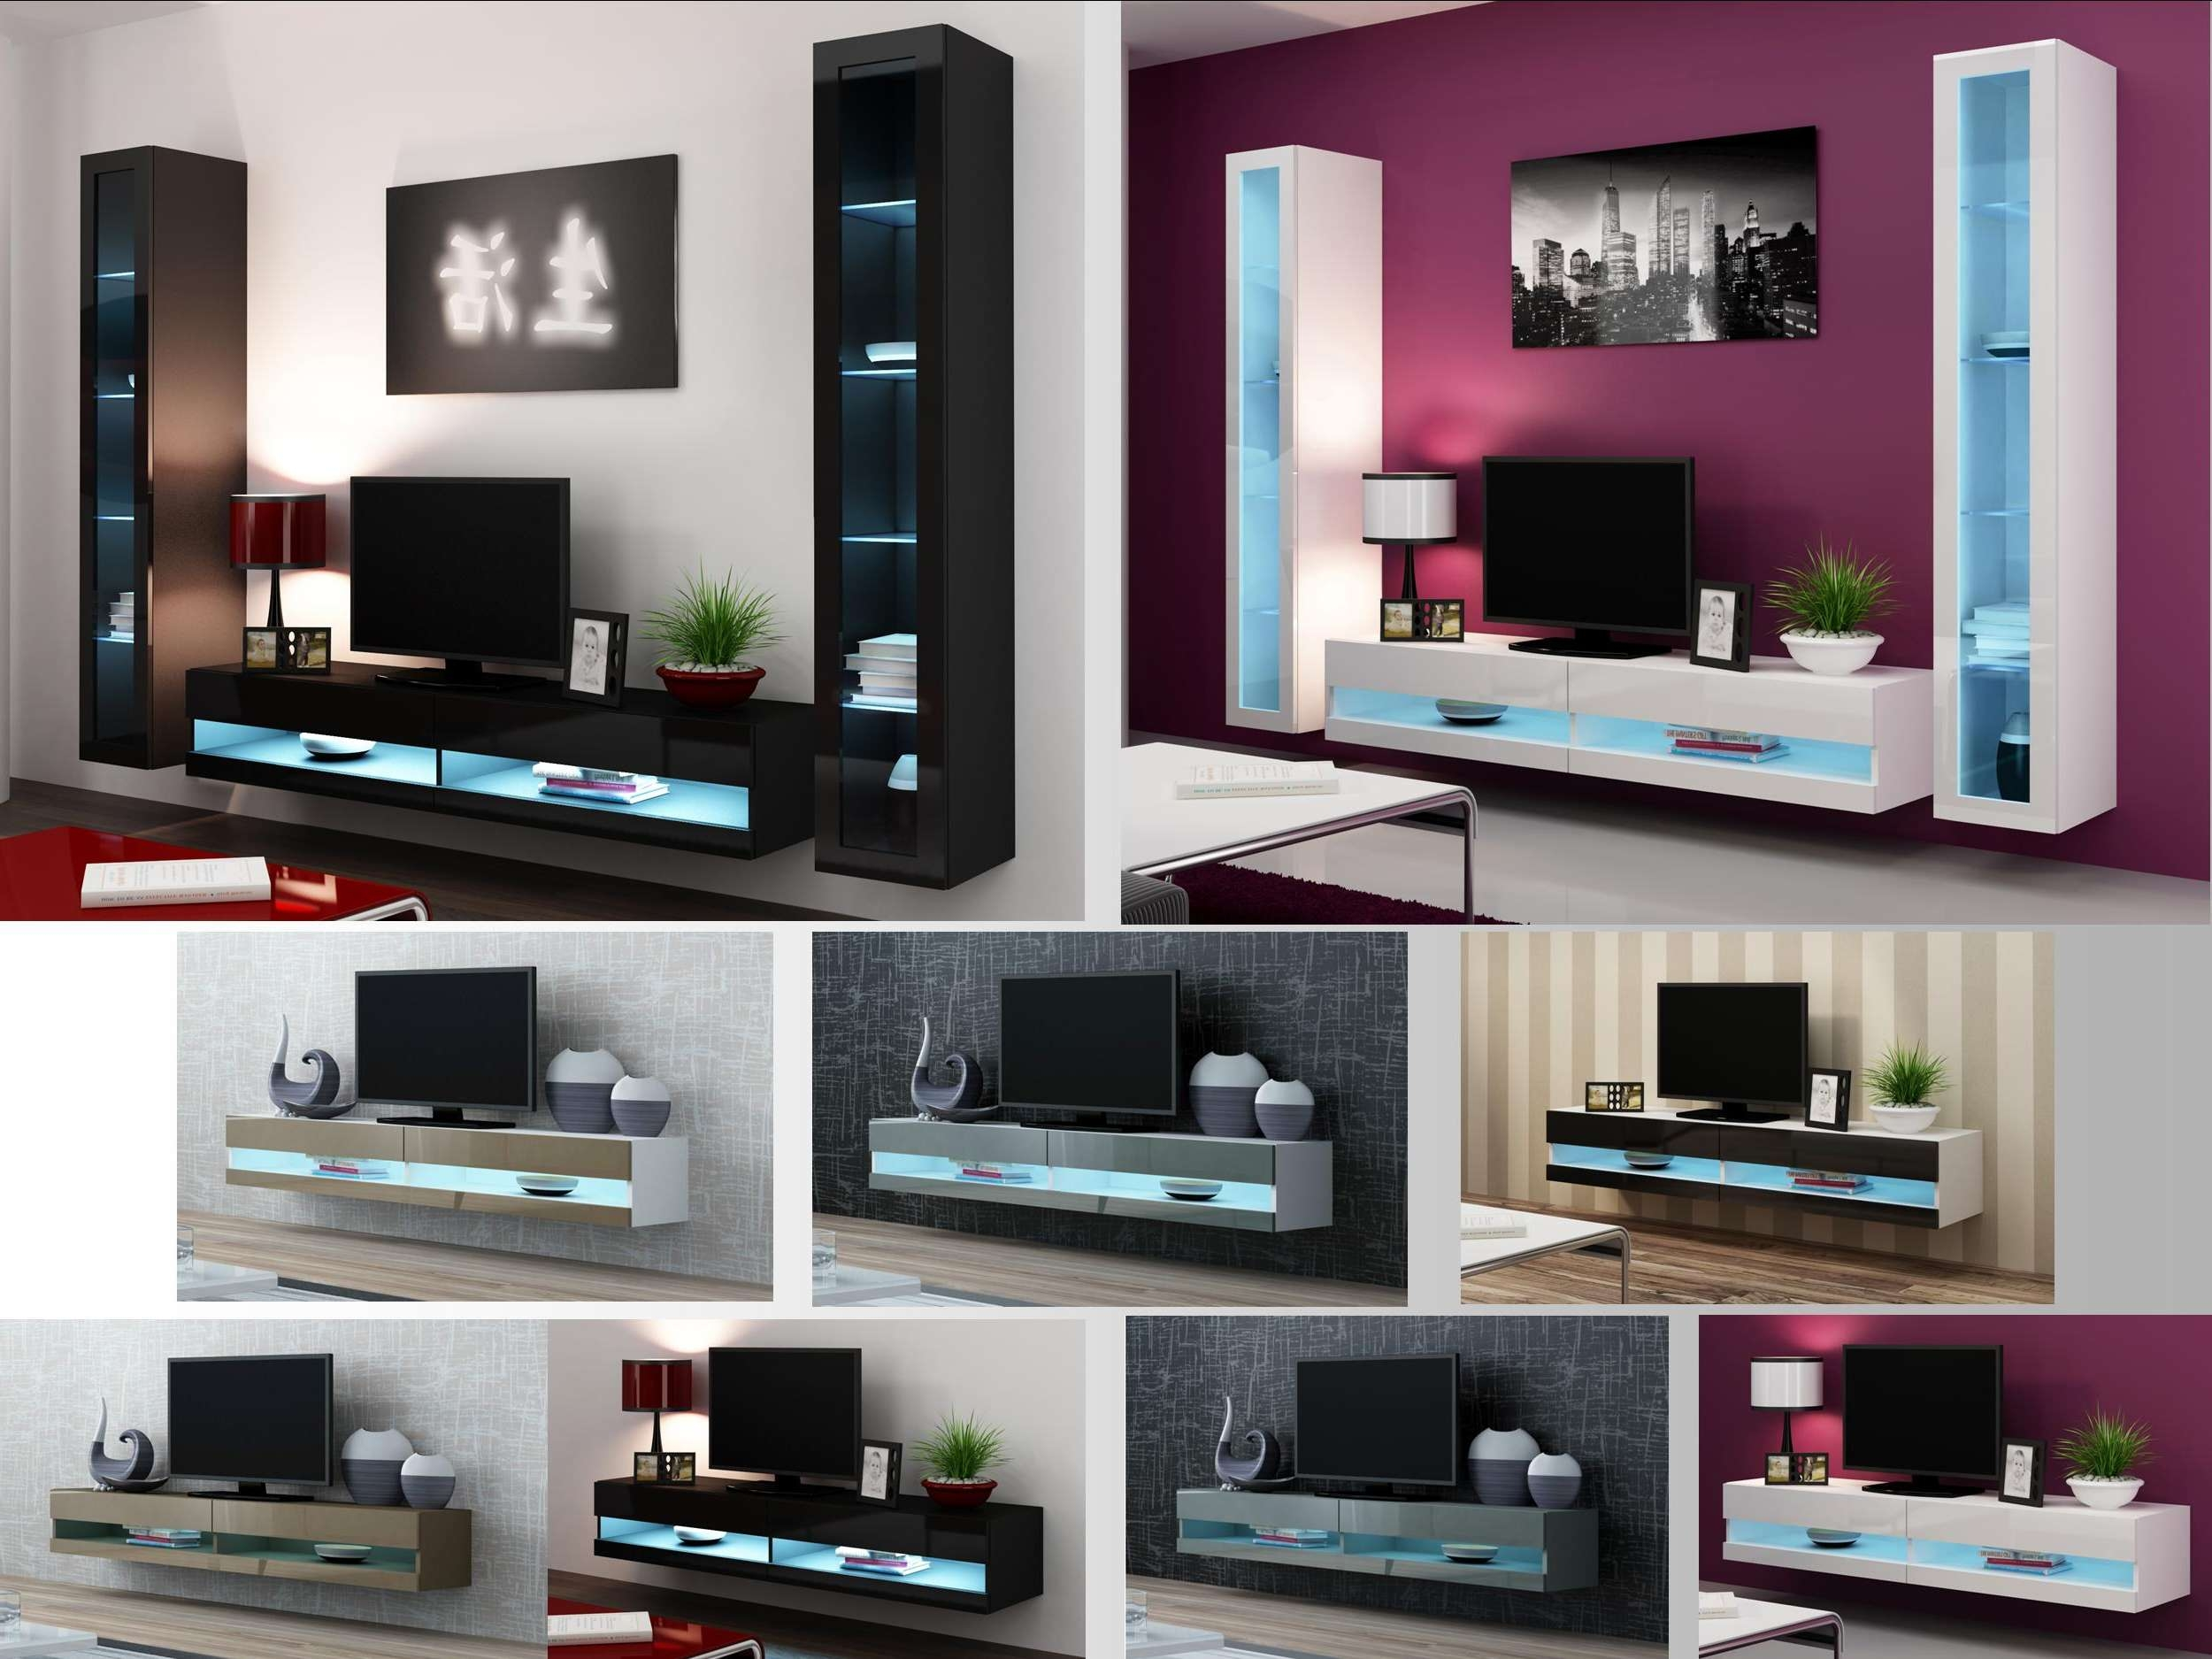 High Gloss Living Room Furniture – Tv Stand, Wall Mounted Cabinet Within Tv Cabinets And Wall Units (View 3 of 20)